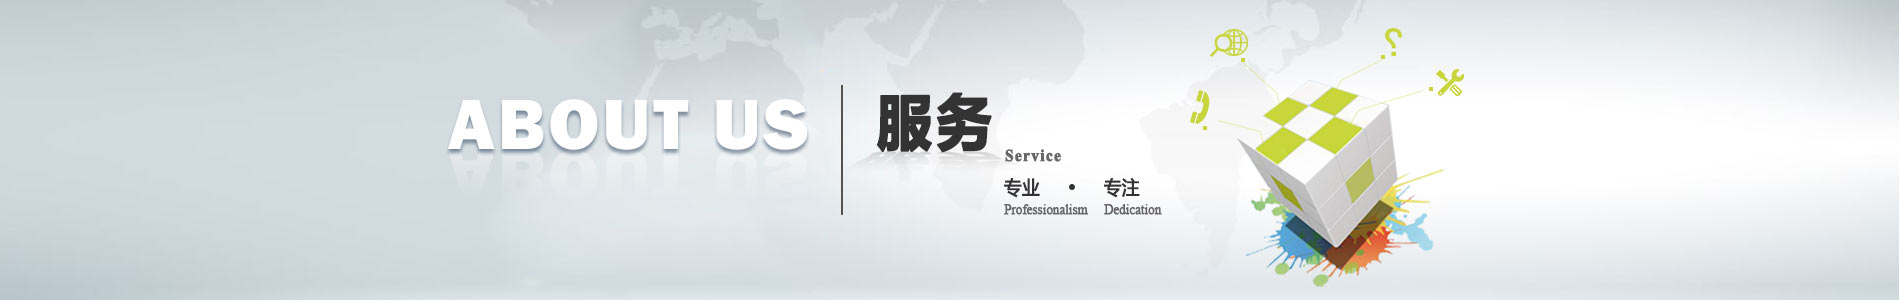 PC端banner